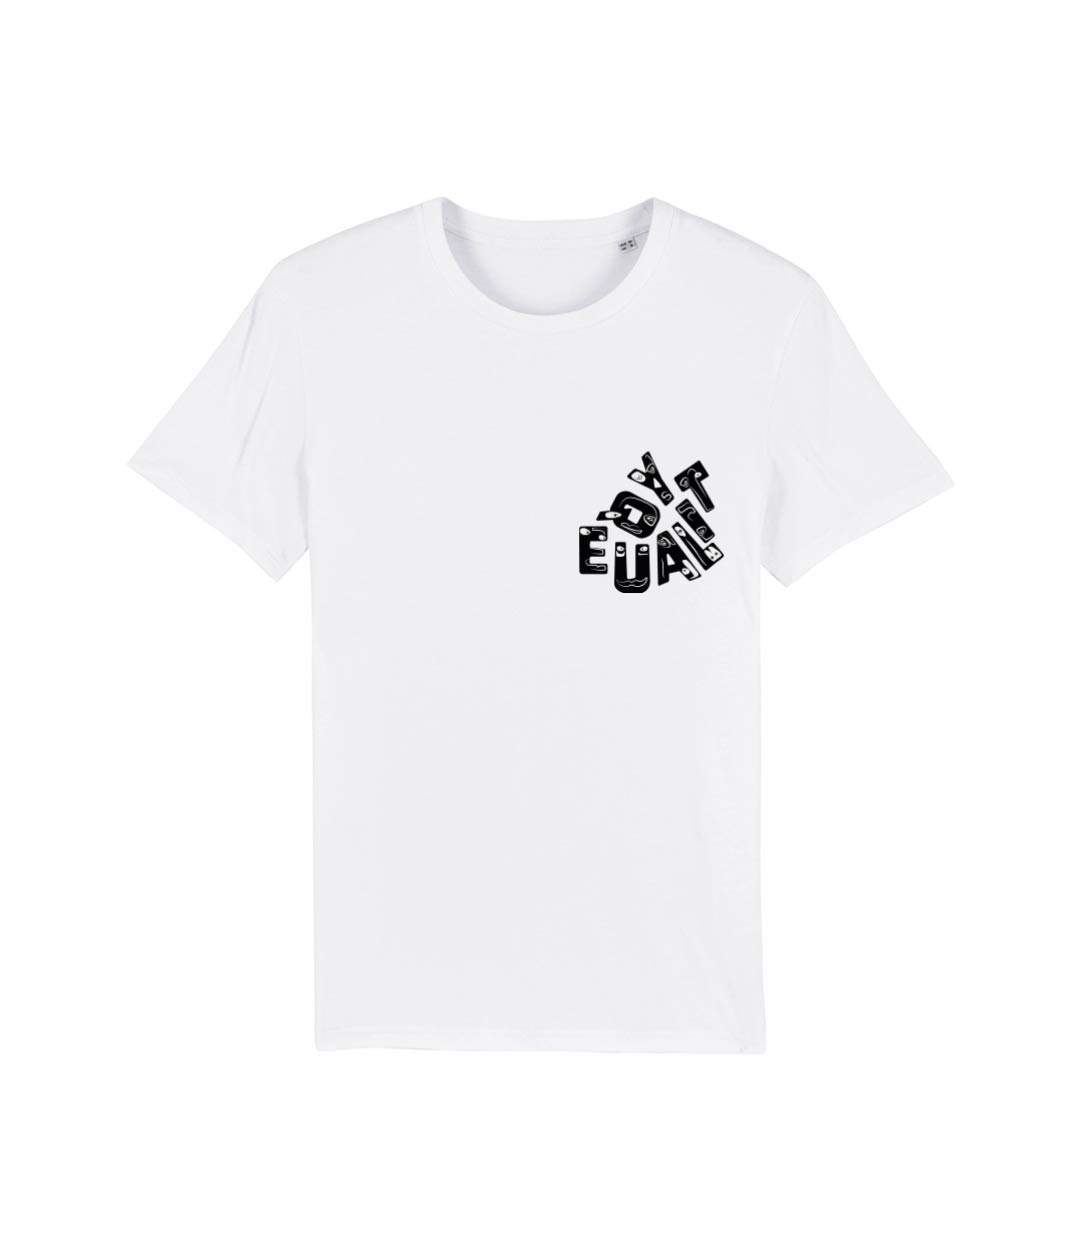 mock up unisexe t shirt blanc equality noir leonor roversi